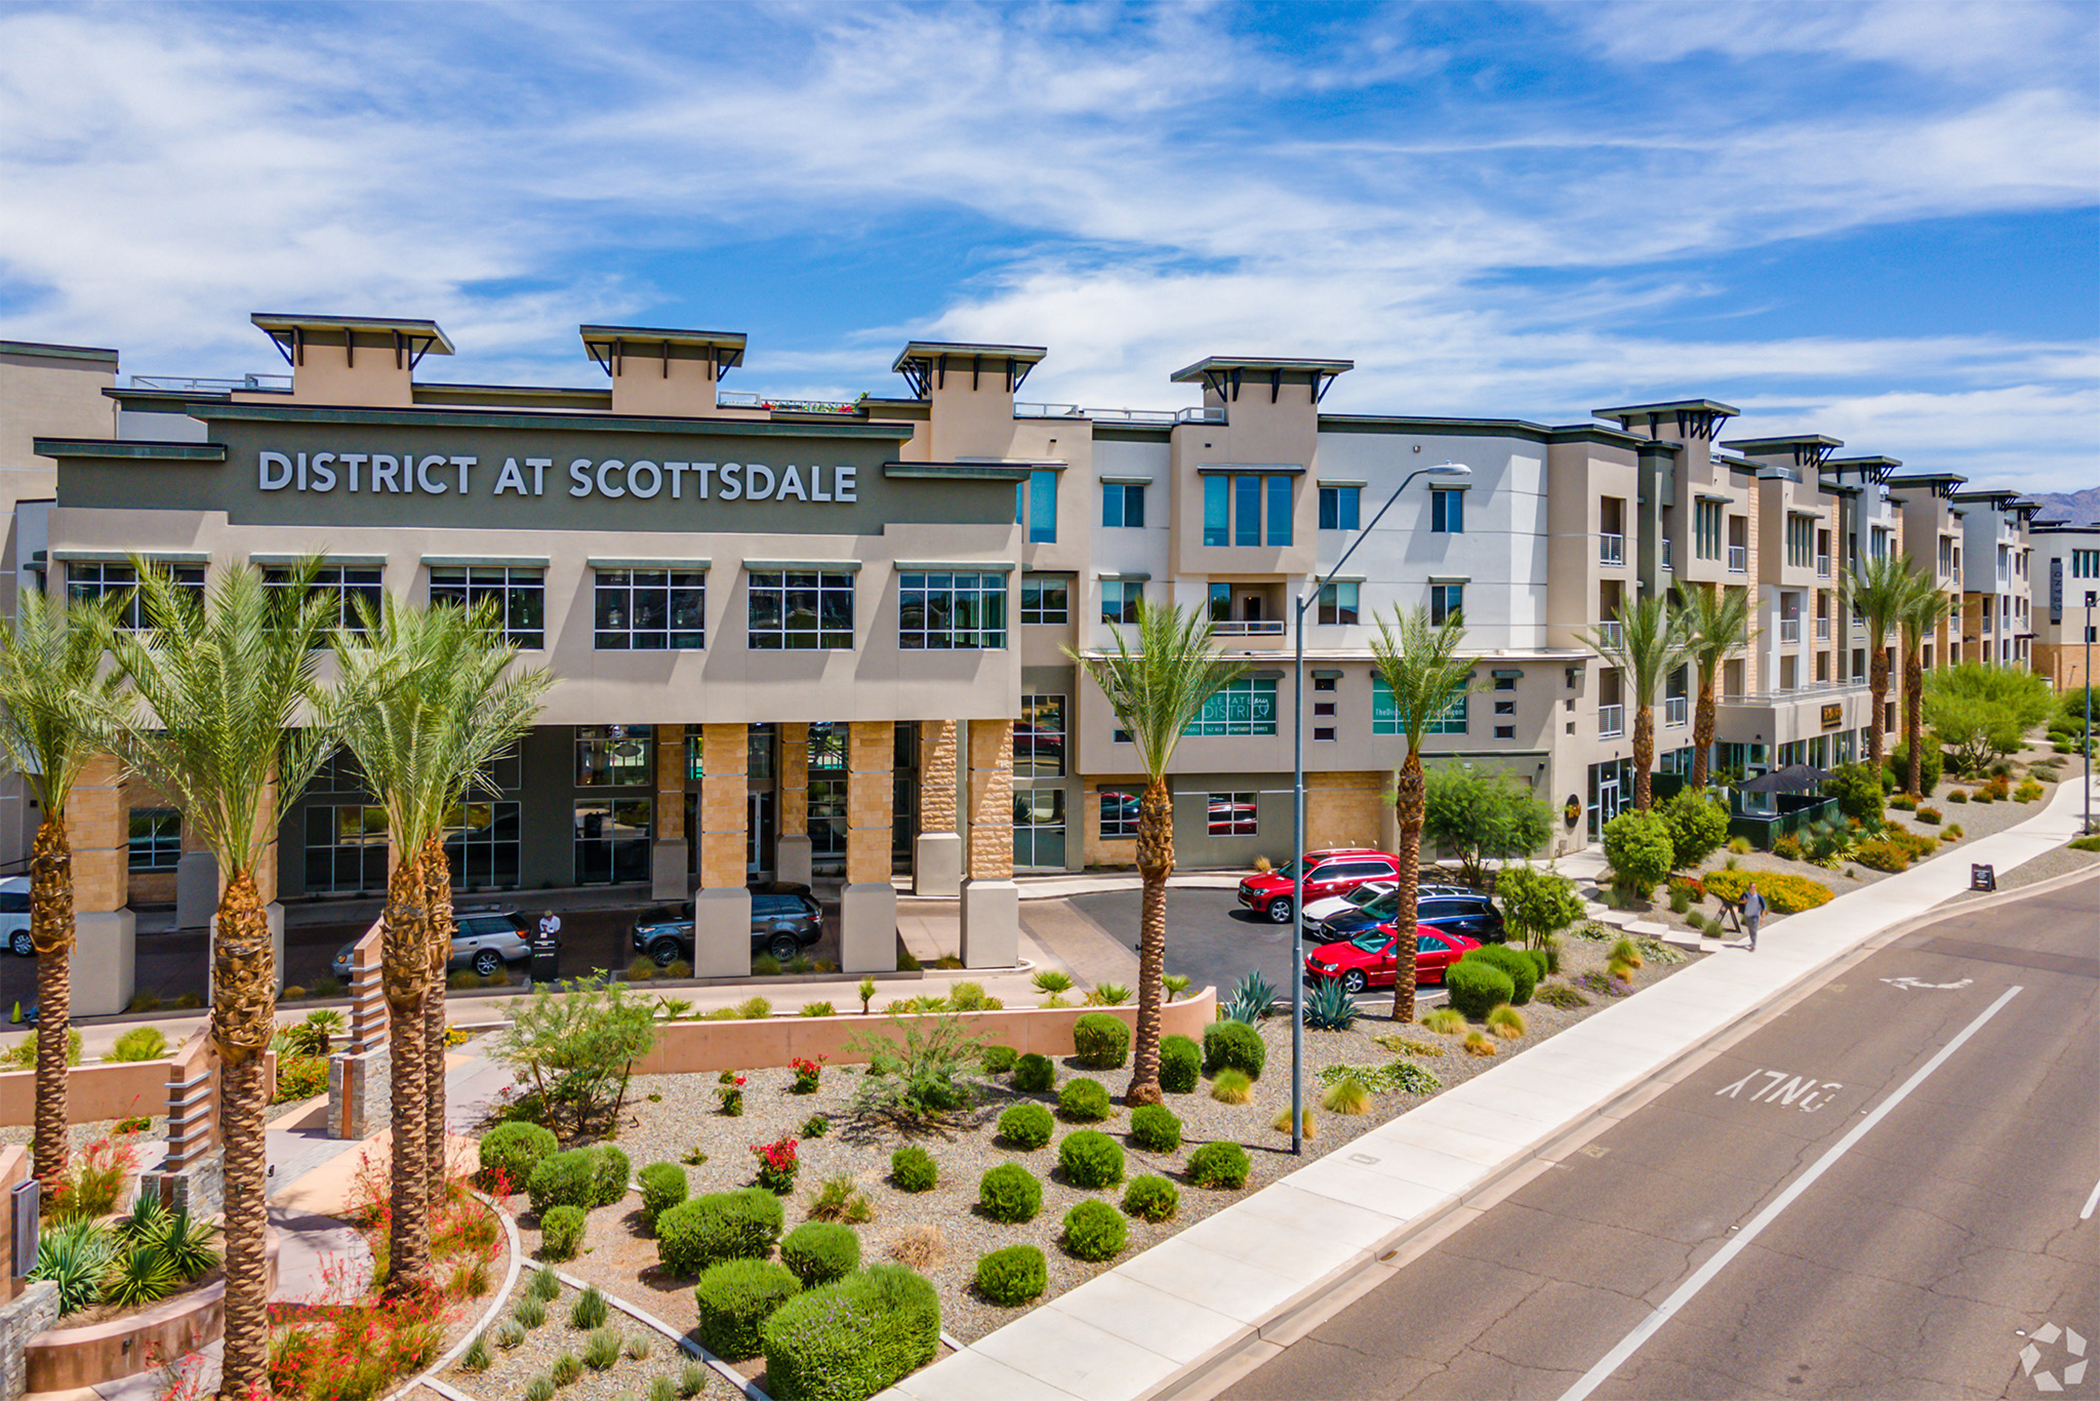 The District at Scottsdale was built in 2019. (CoStar)